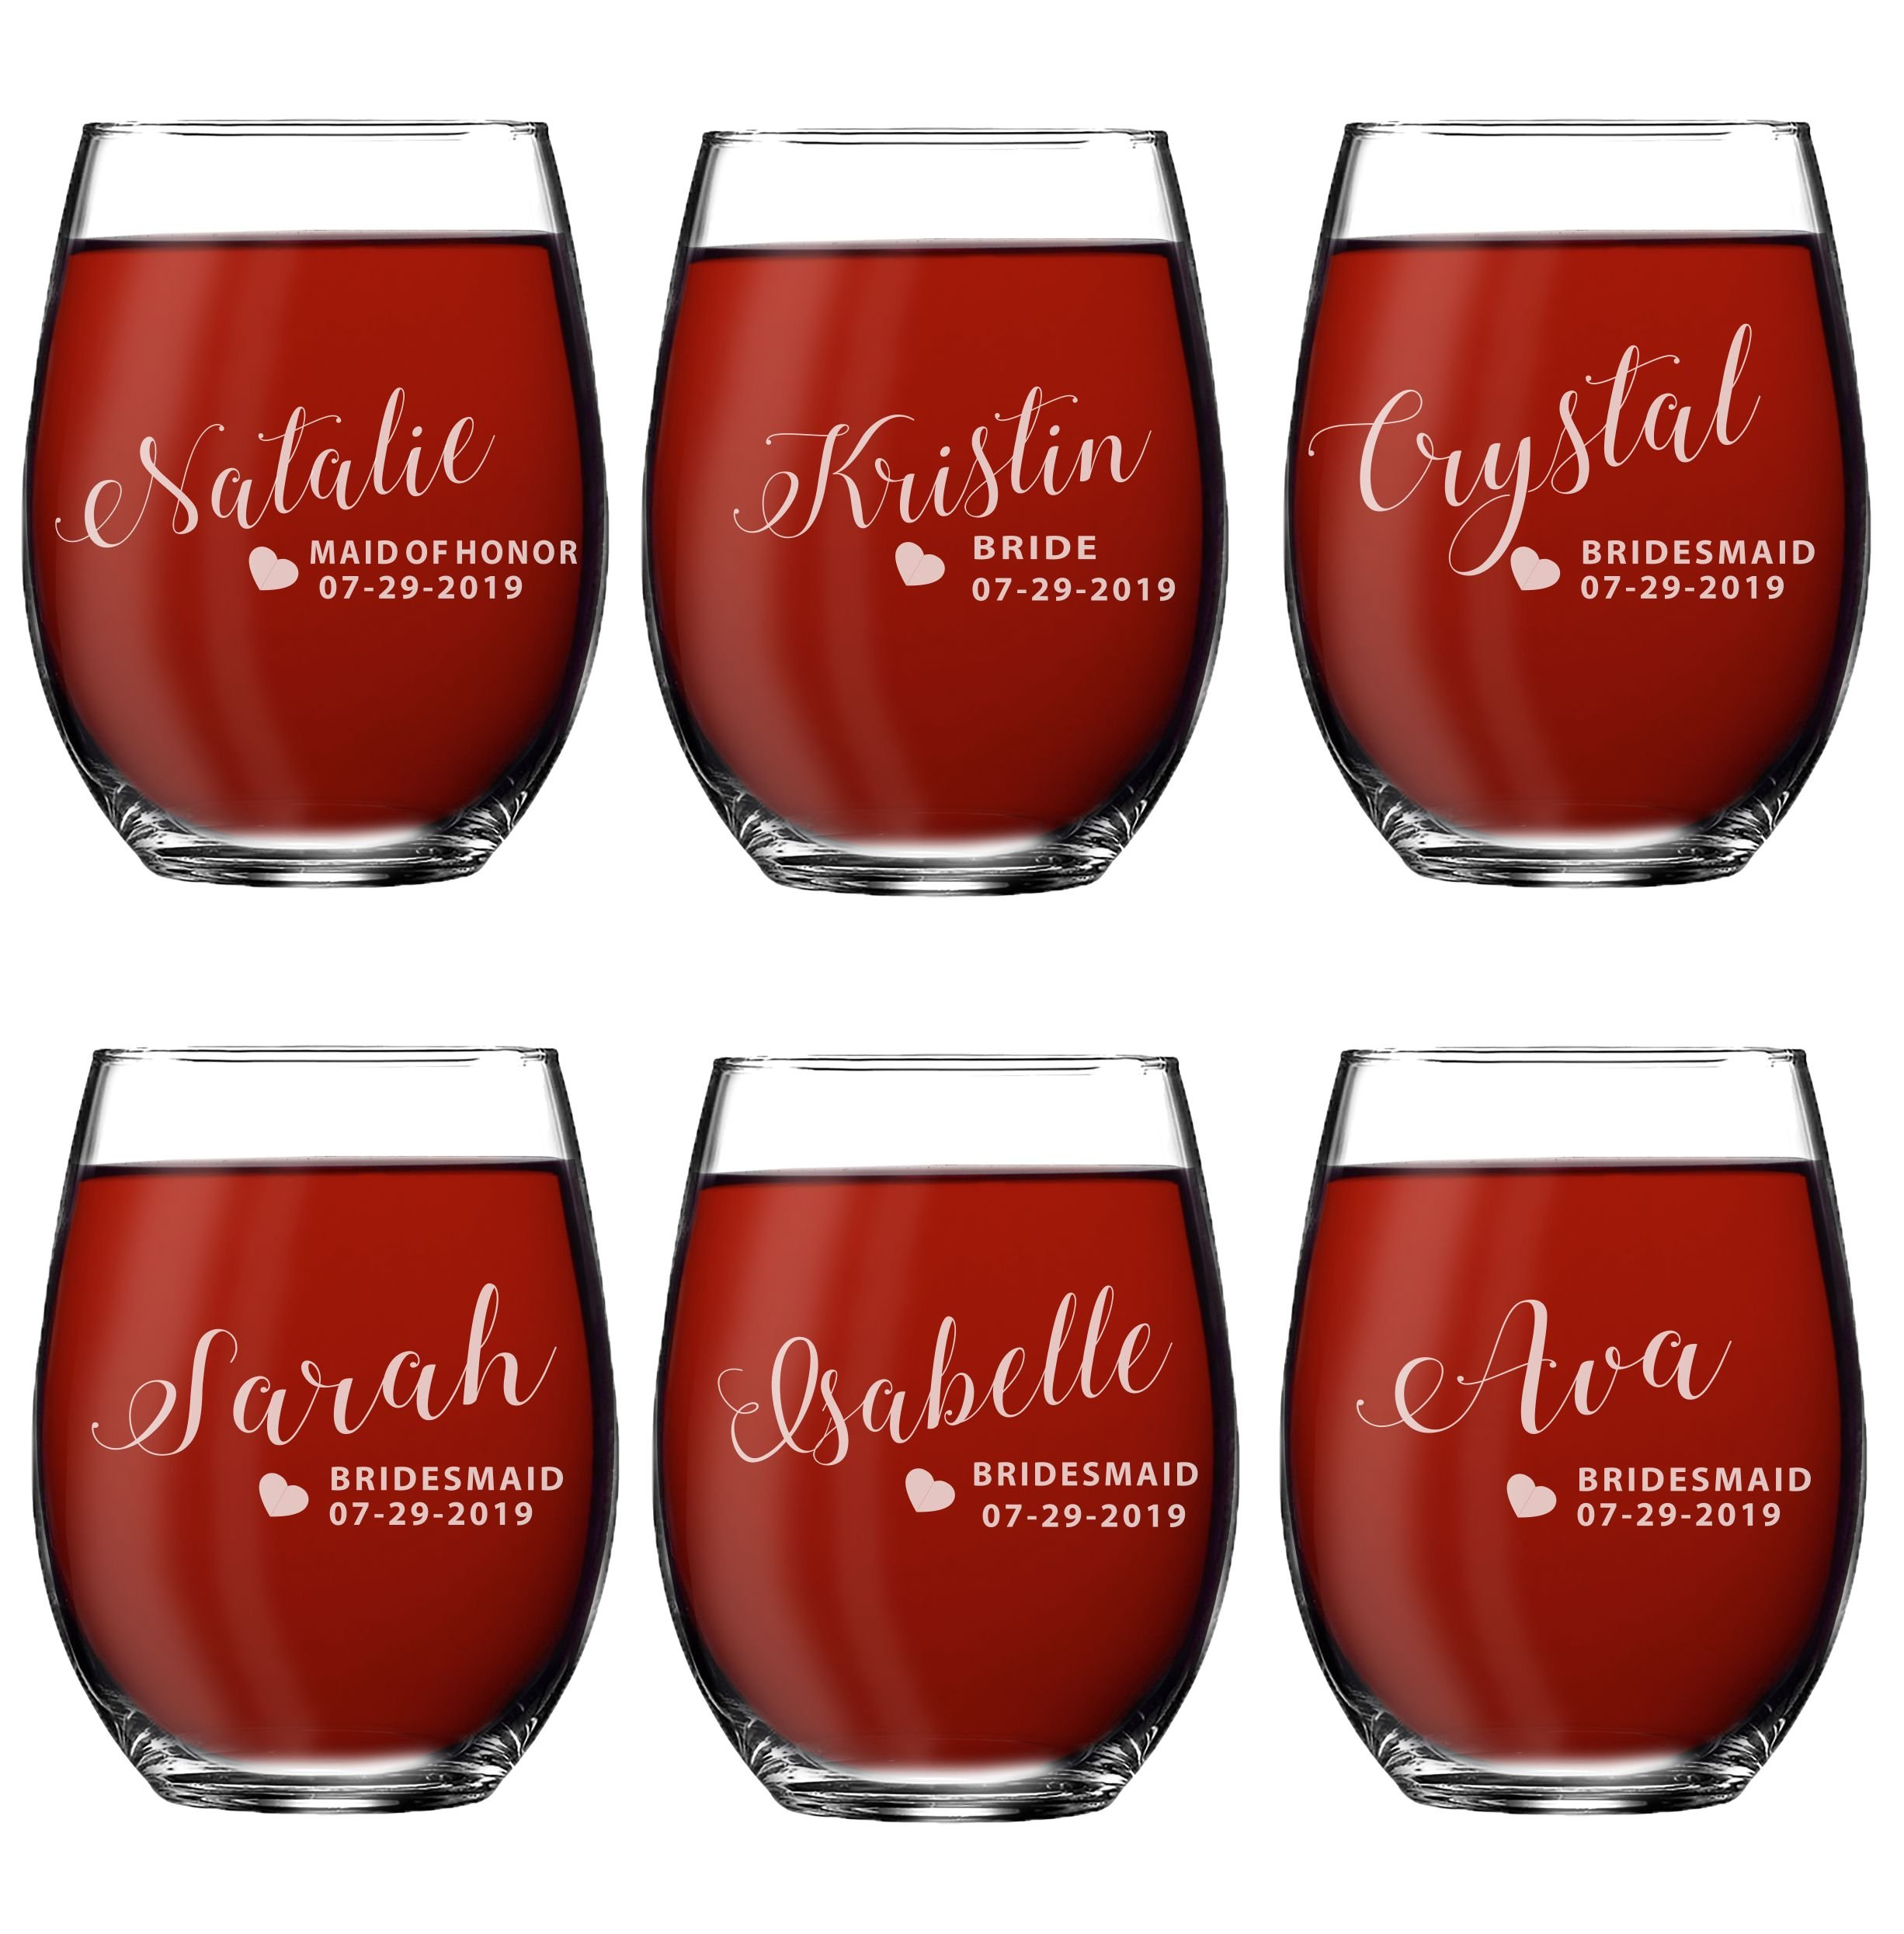 Set of 1, 2, 3, 4, 5, 6, 7, 8 Custom Engraved Bridesmaid Gifts - Personalized Stemless Wine Glasses - Passion Style (6)